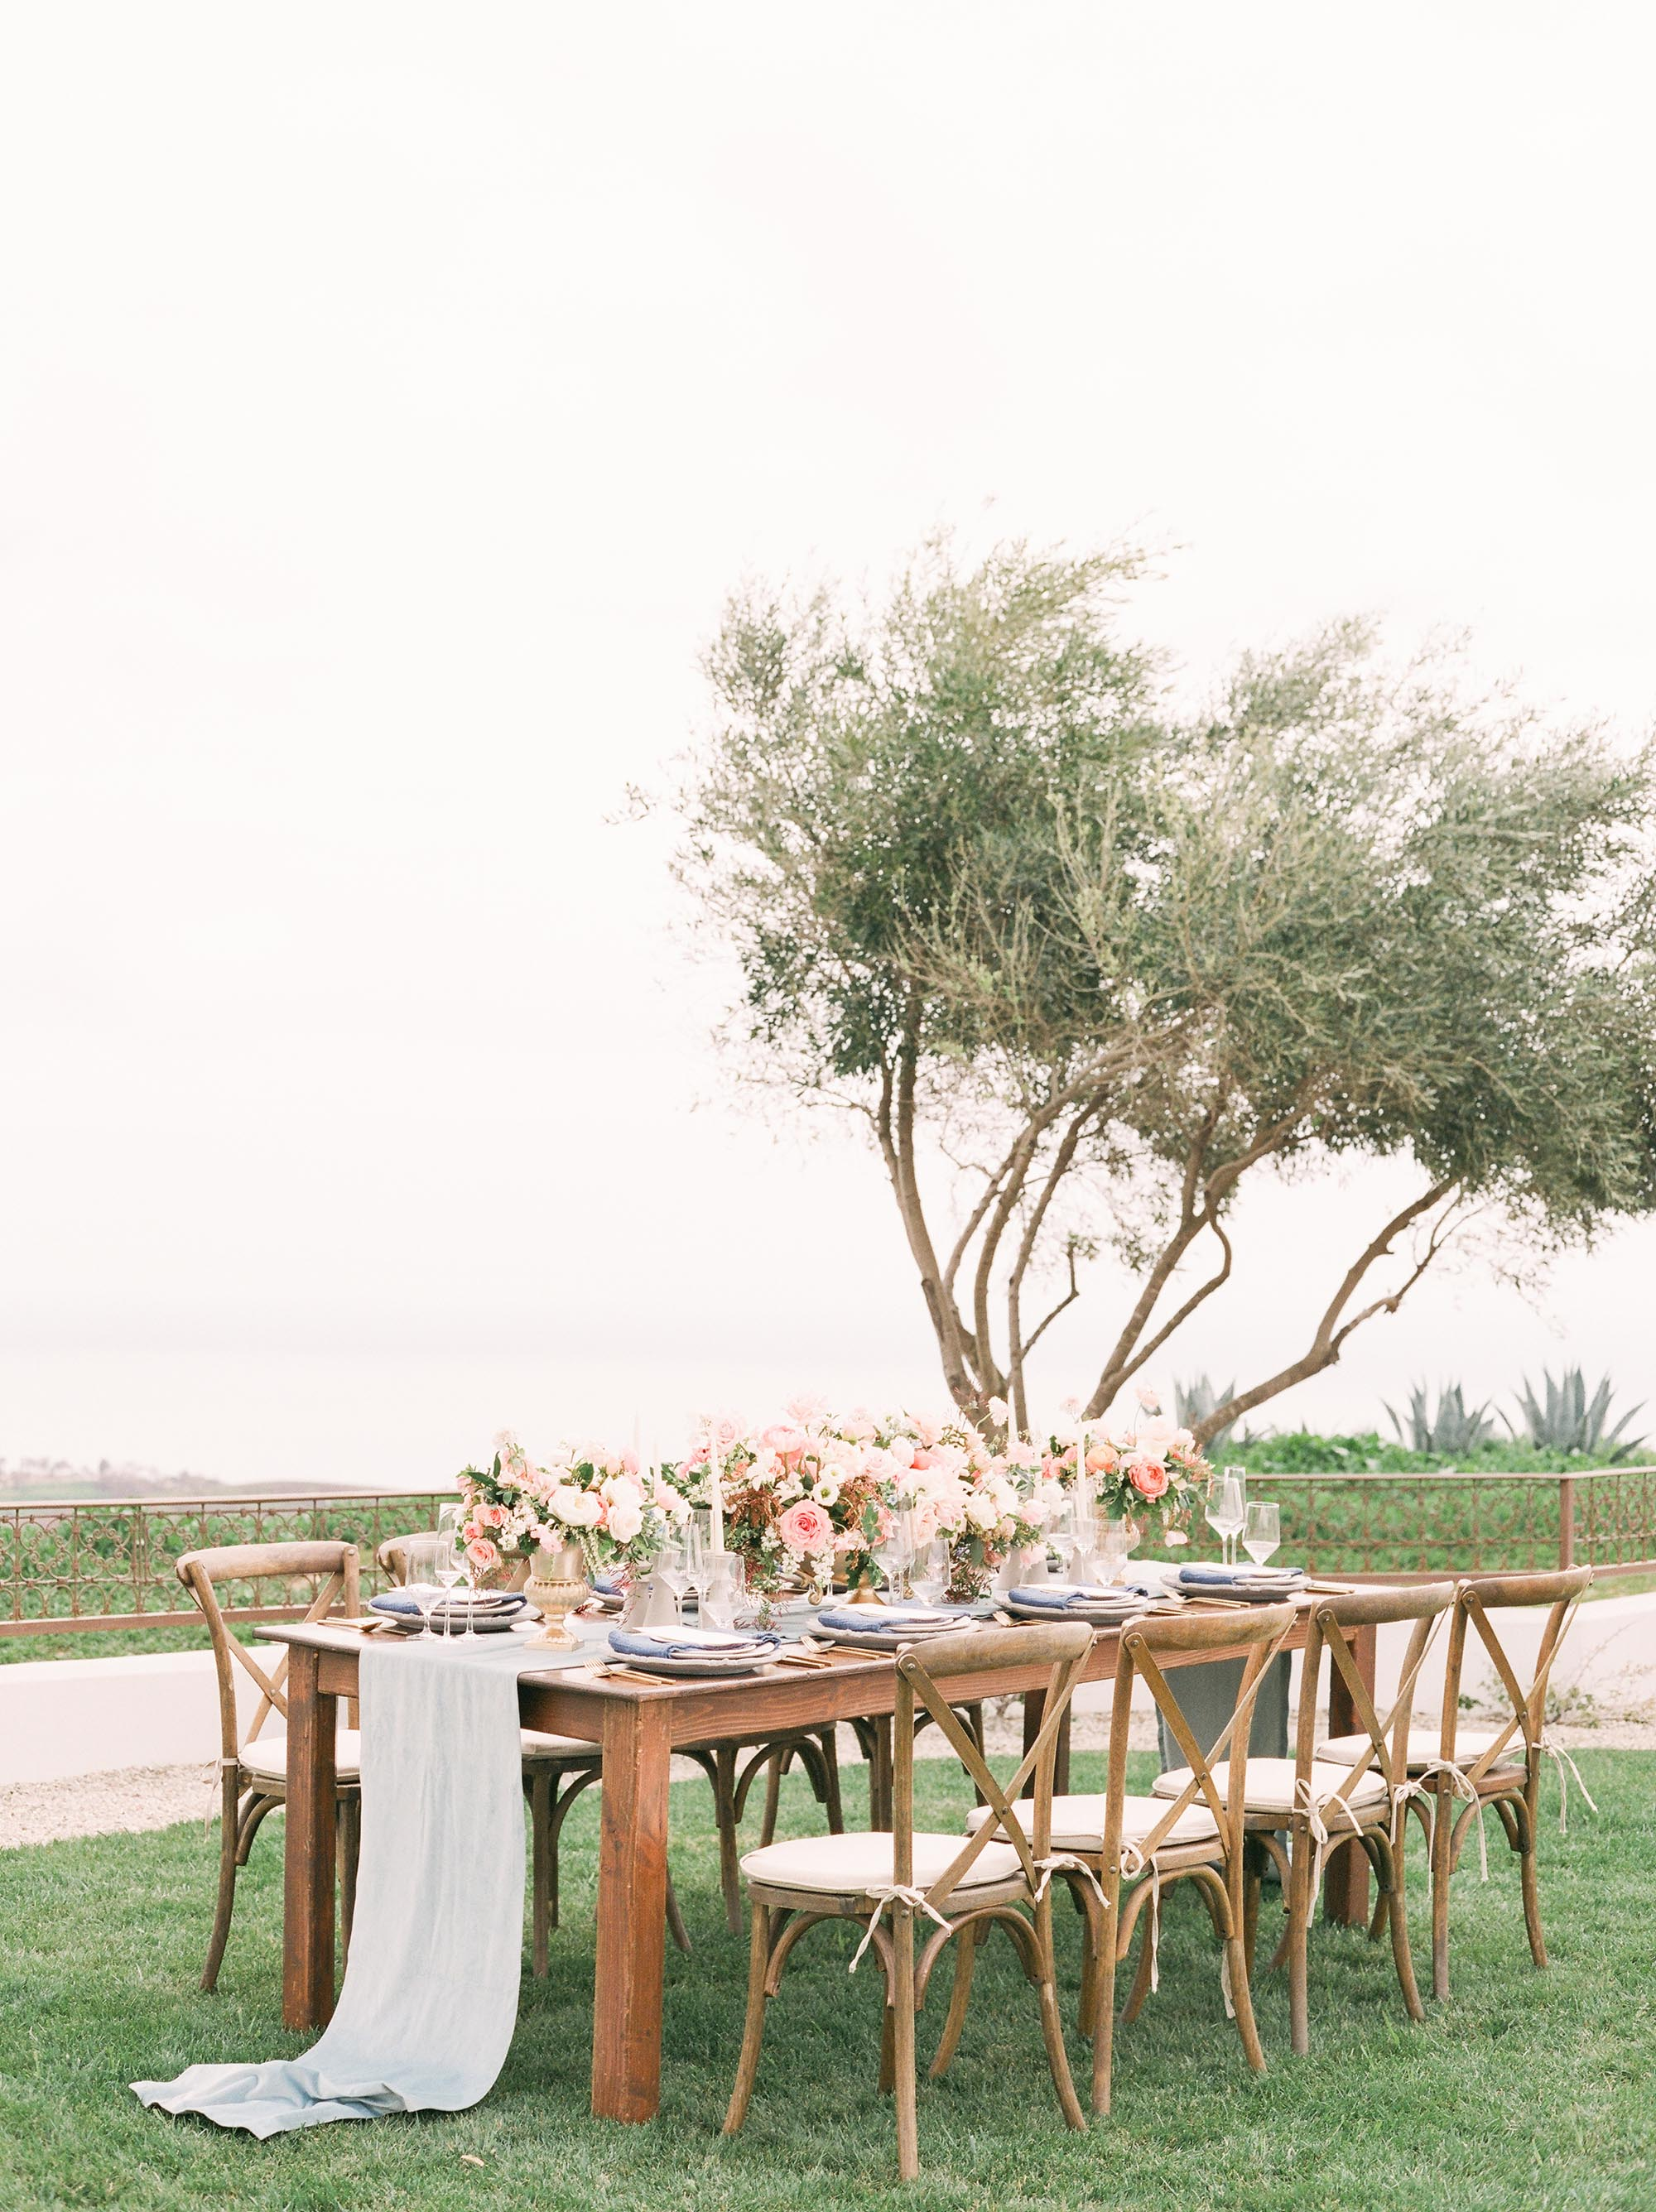 Romantic and light spring wedding on the cliffs of Malibu. Photo by Julie Paisley. Florals by Royal Bee Flower Co. Stationery by Caitlin O'Bryant Design. Venue: Deer Creek Ridge.